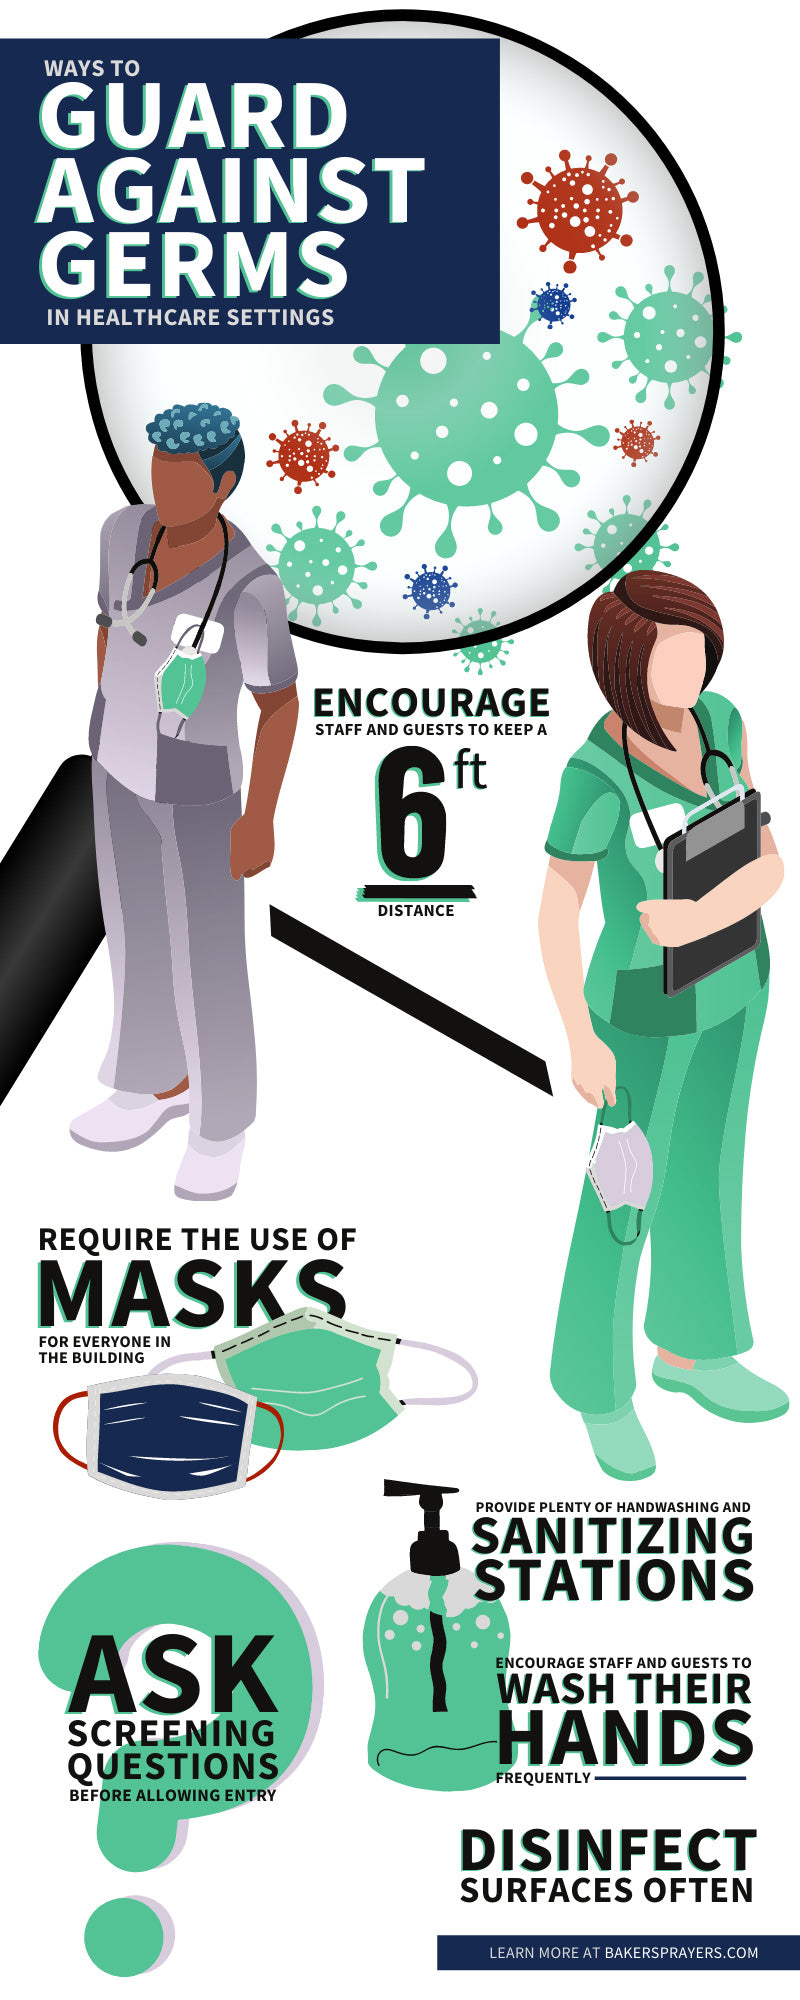 Ways To Guard Against Germs in Healthcare Settings infographic